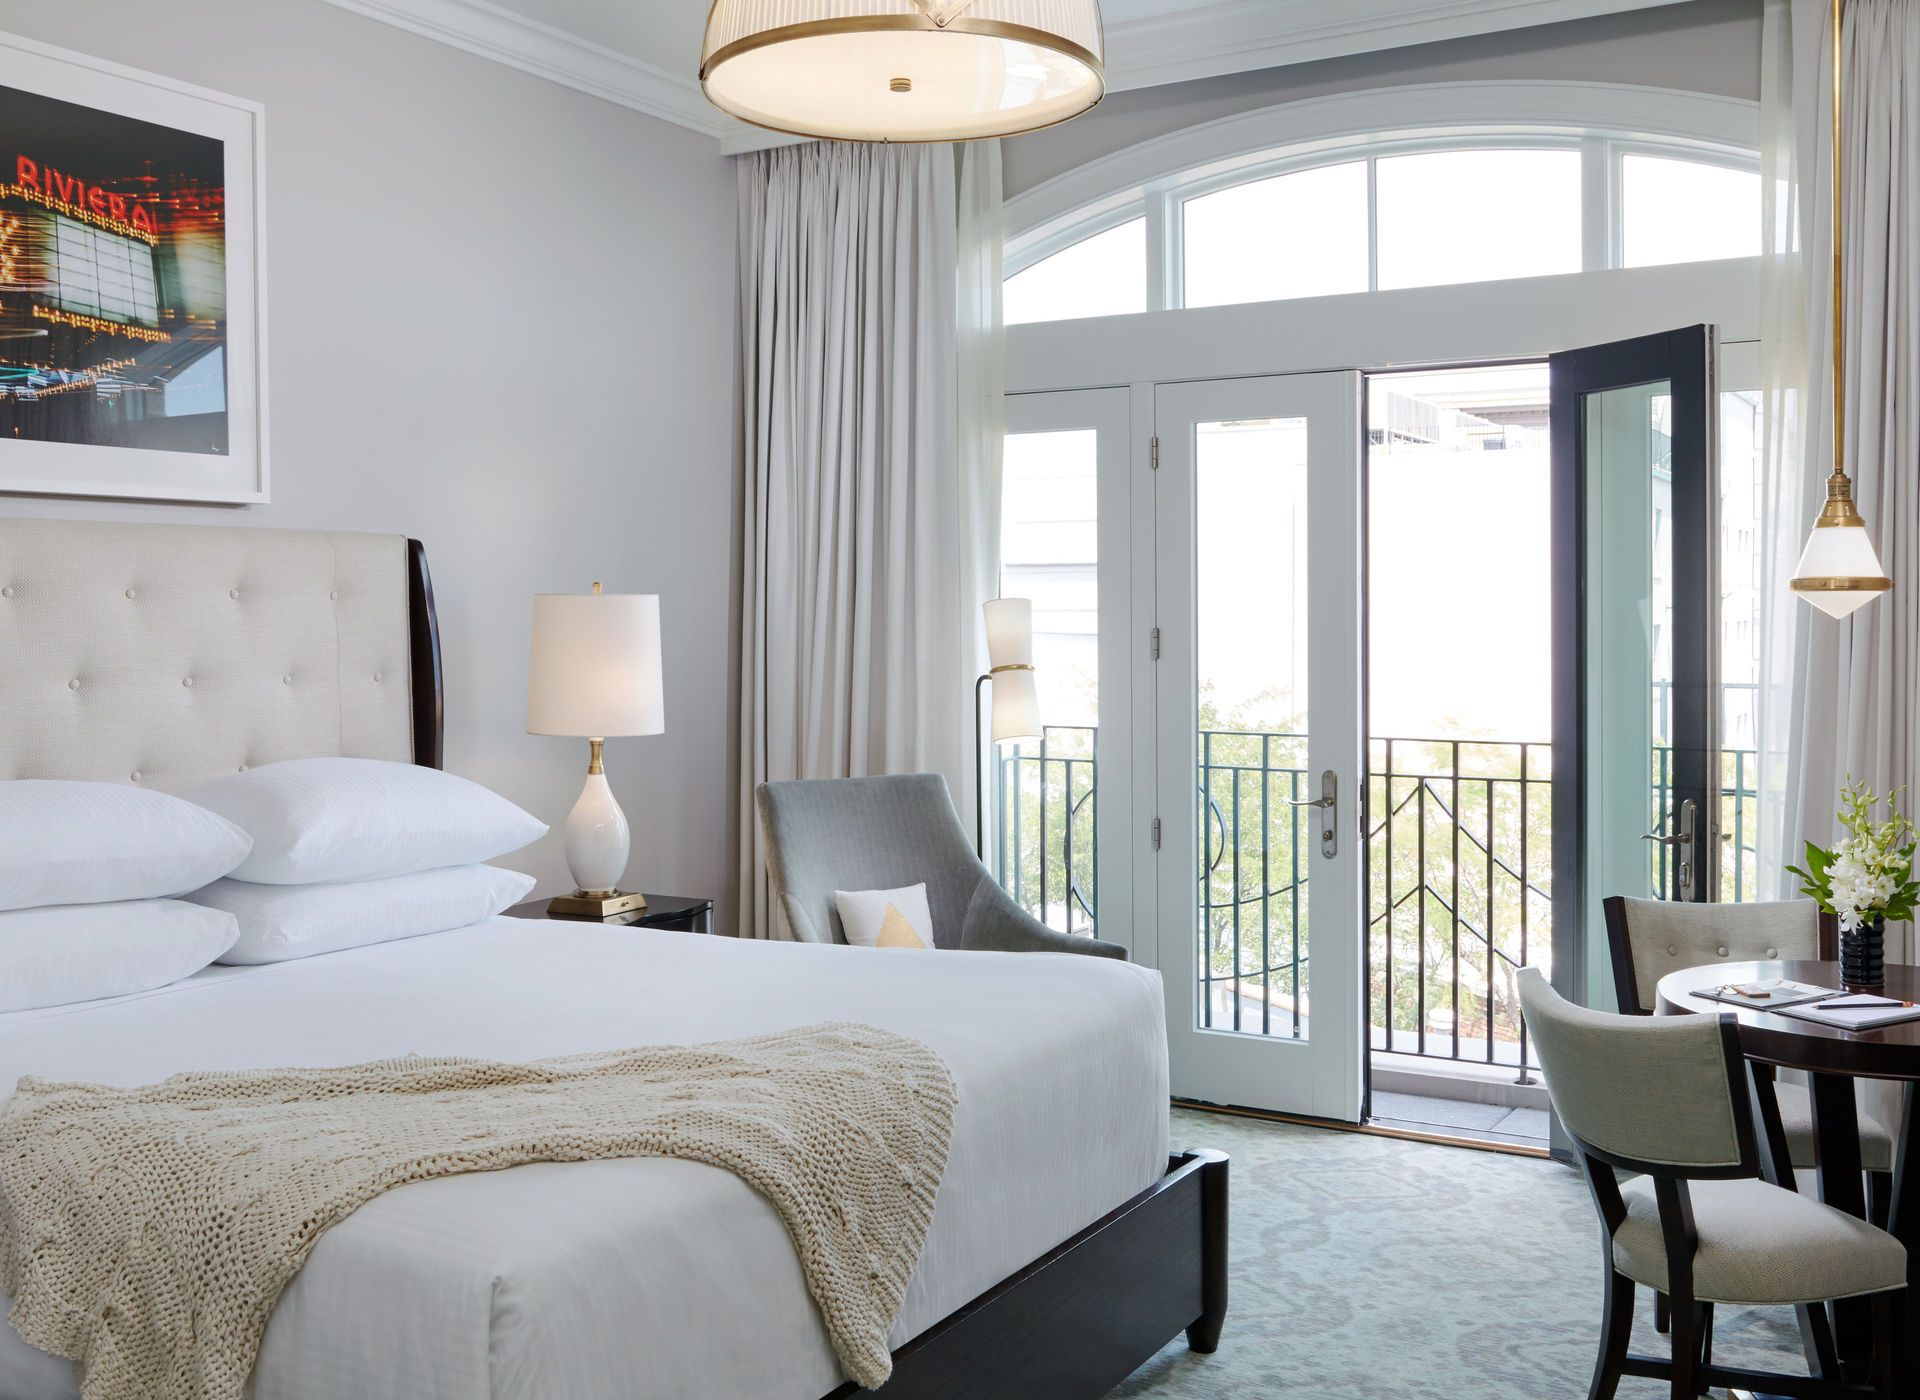 8 Best Hotels In Charleston Living Rooms Bedrooms And Modern # Meuble Armoire Et Bahiou En Bois